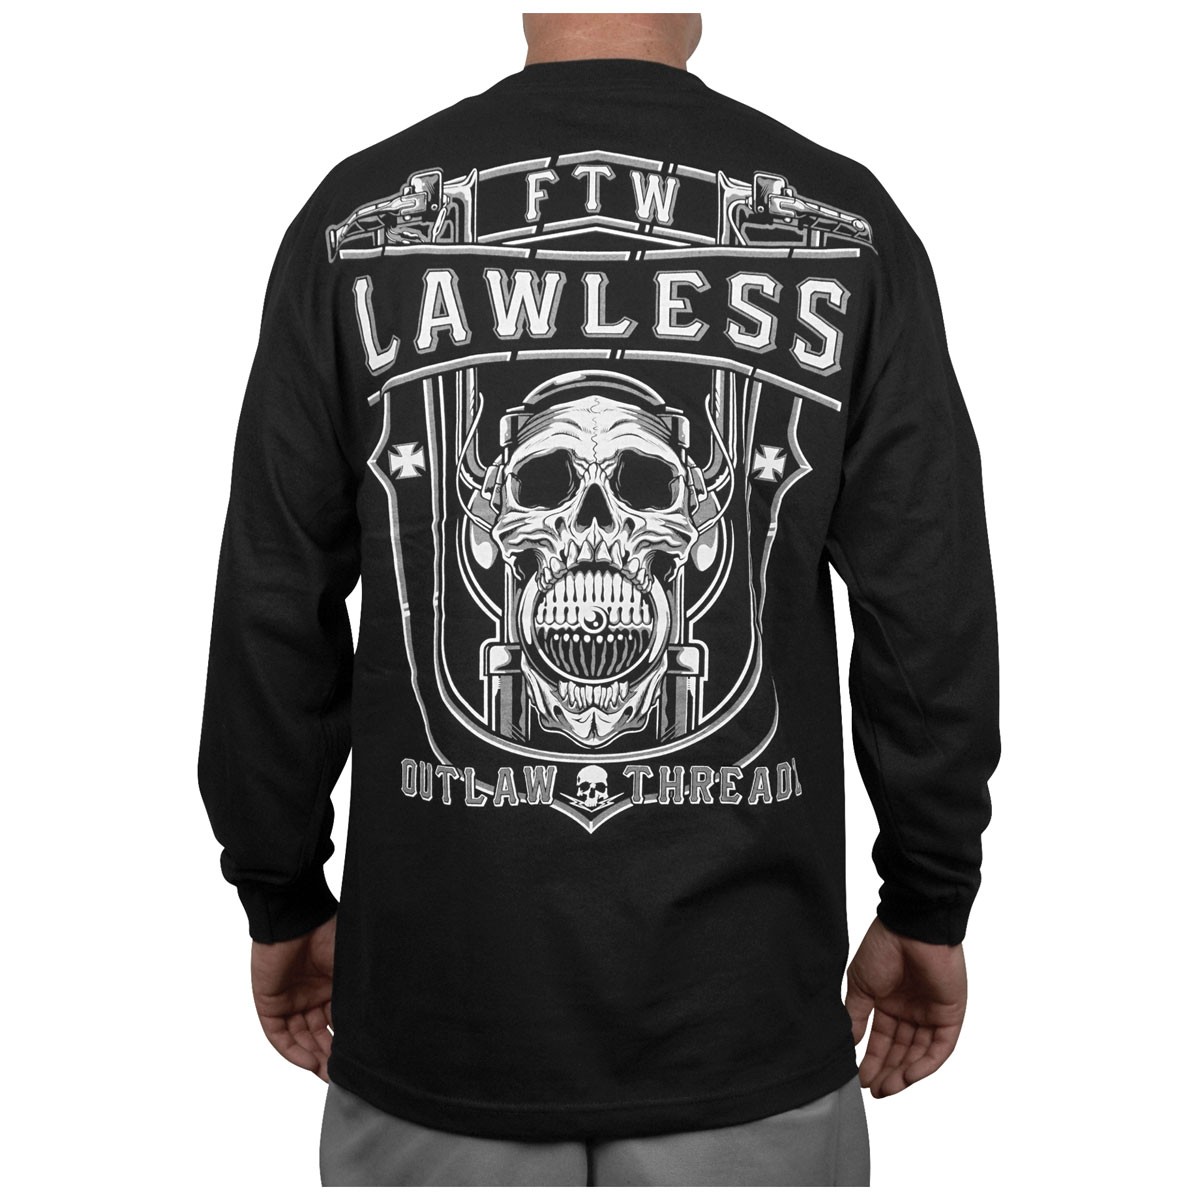 Outlaw Threadz Men's Lawless Black Long-Sleeve T-Shirt